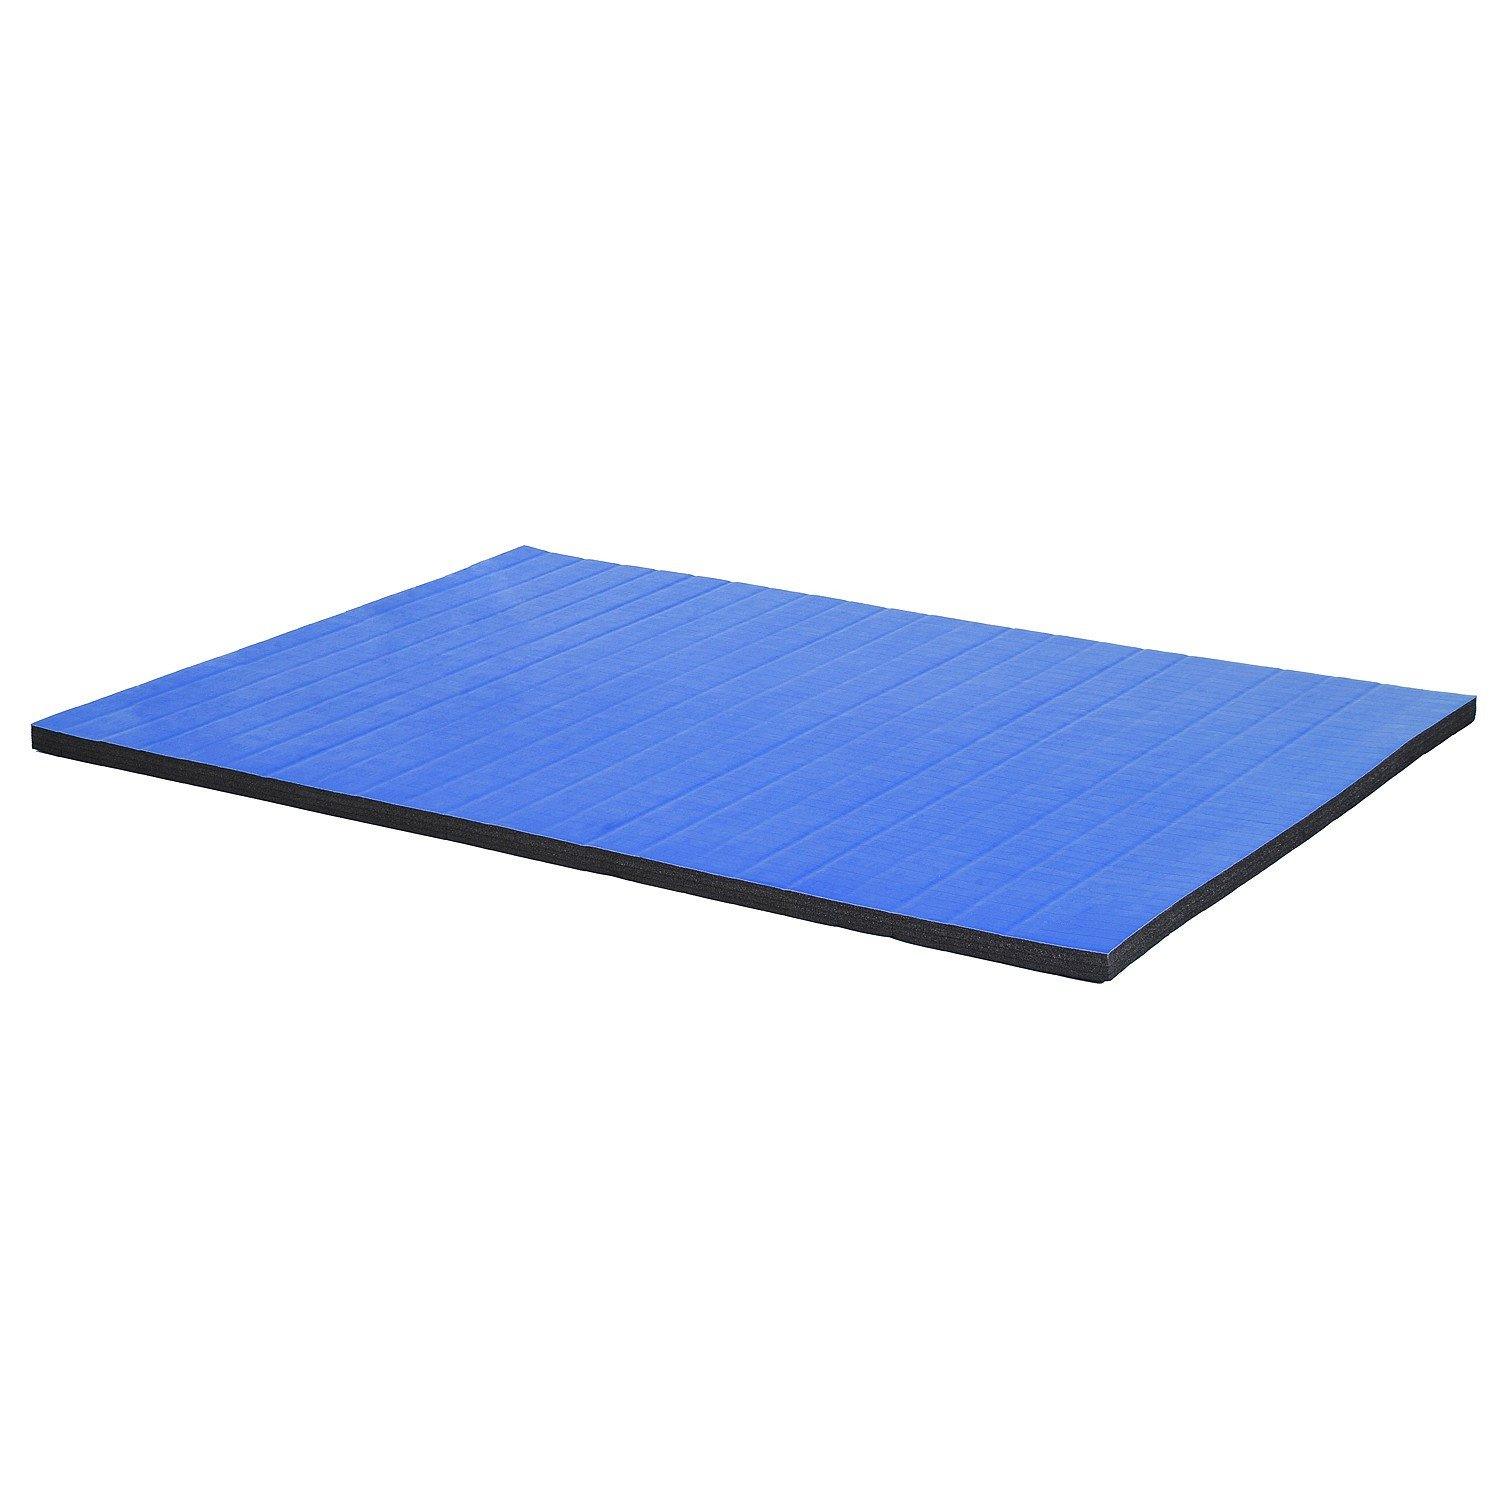 Yoga Wrestling Mat Multi-Use 10'x5' Vinyl Roll Out Gymnastics Cheer Tumbling With Ebook by MRT SUPPLY